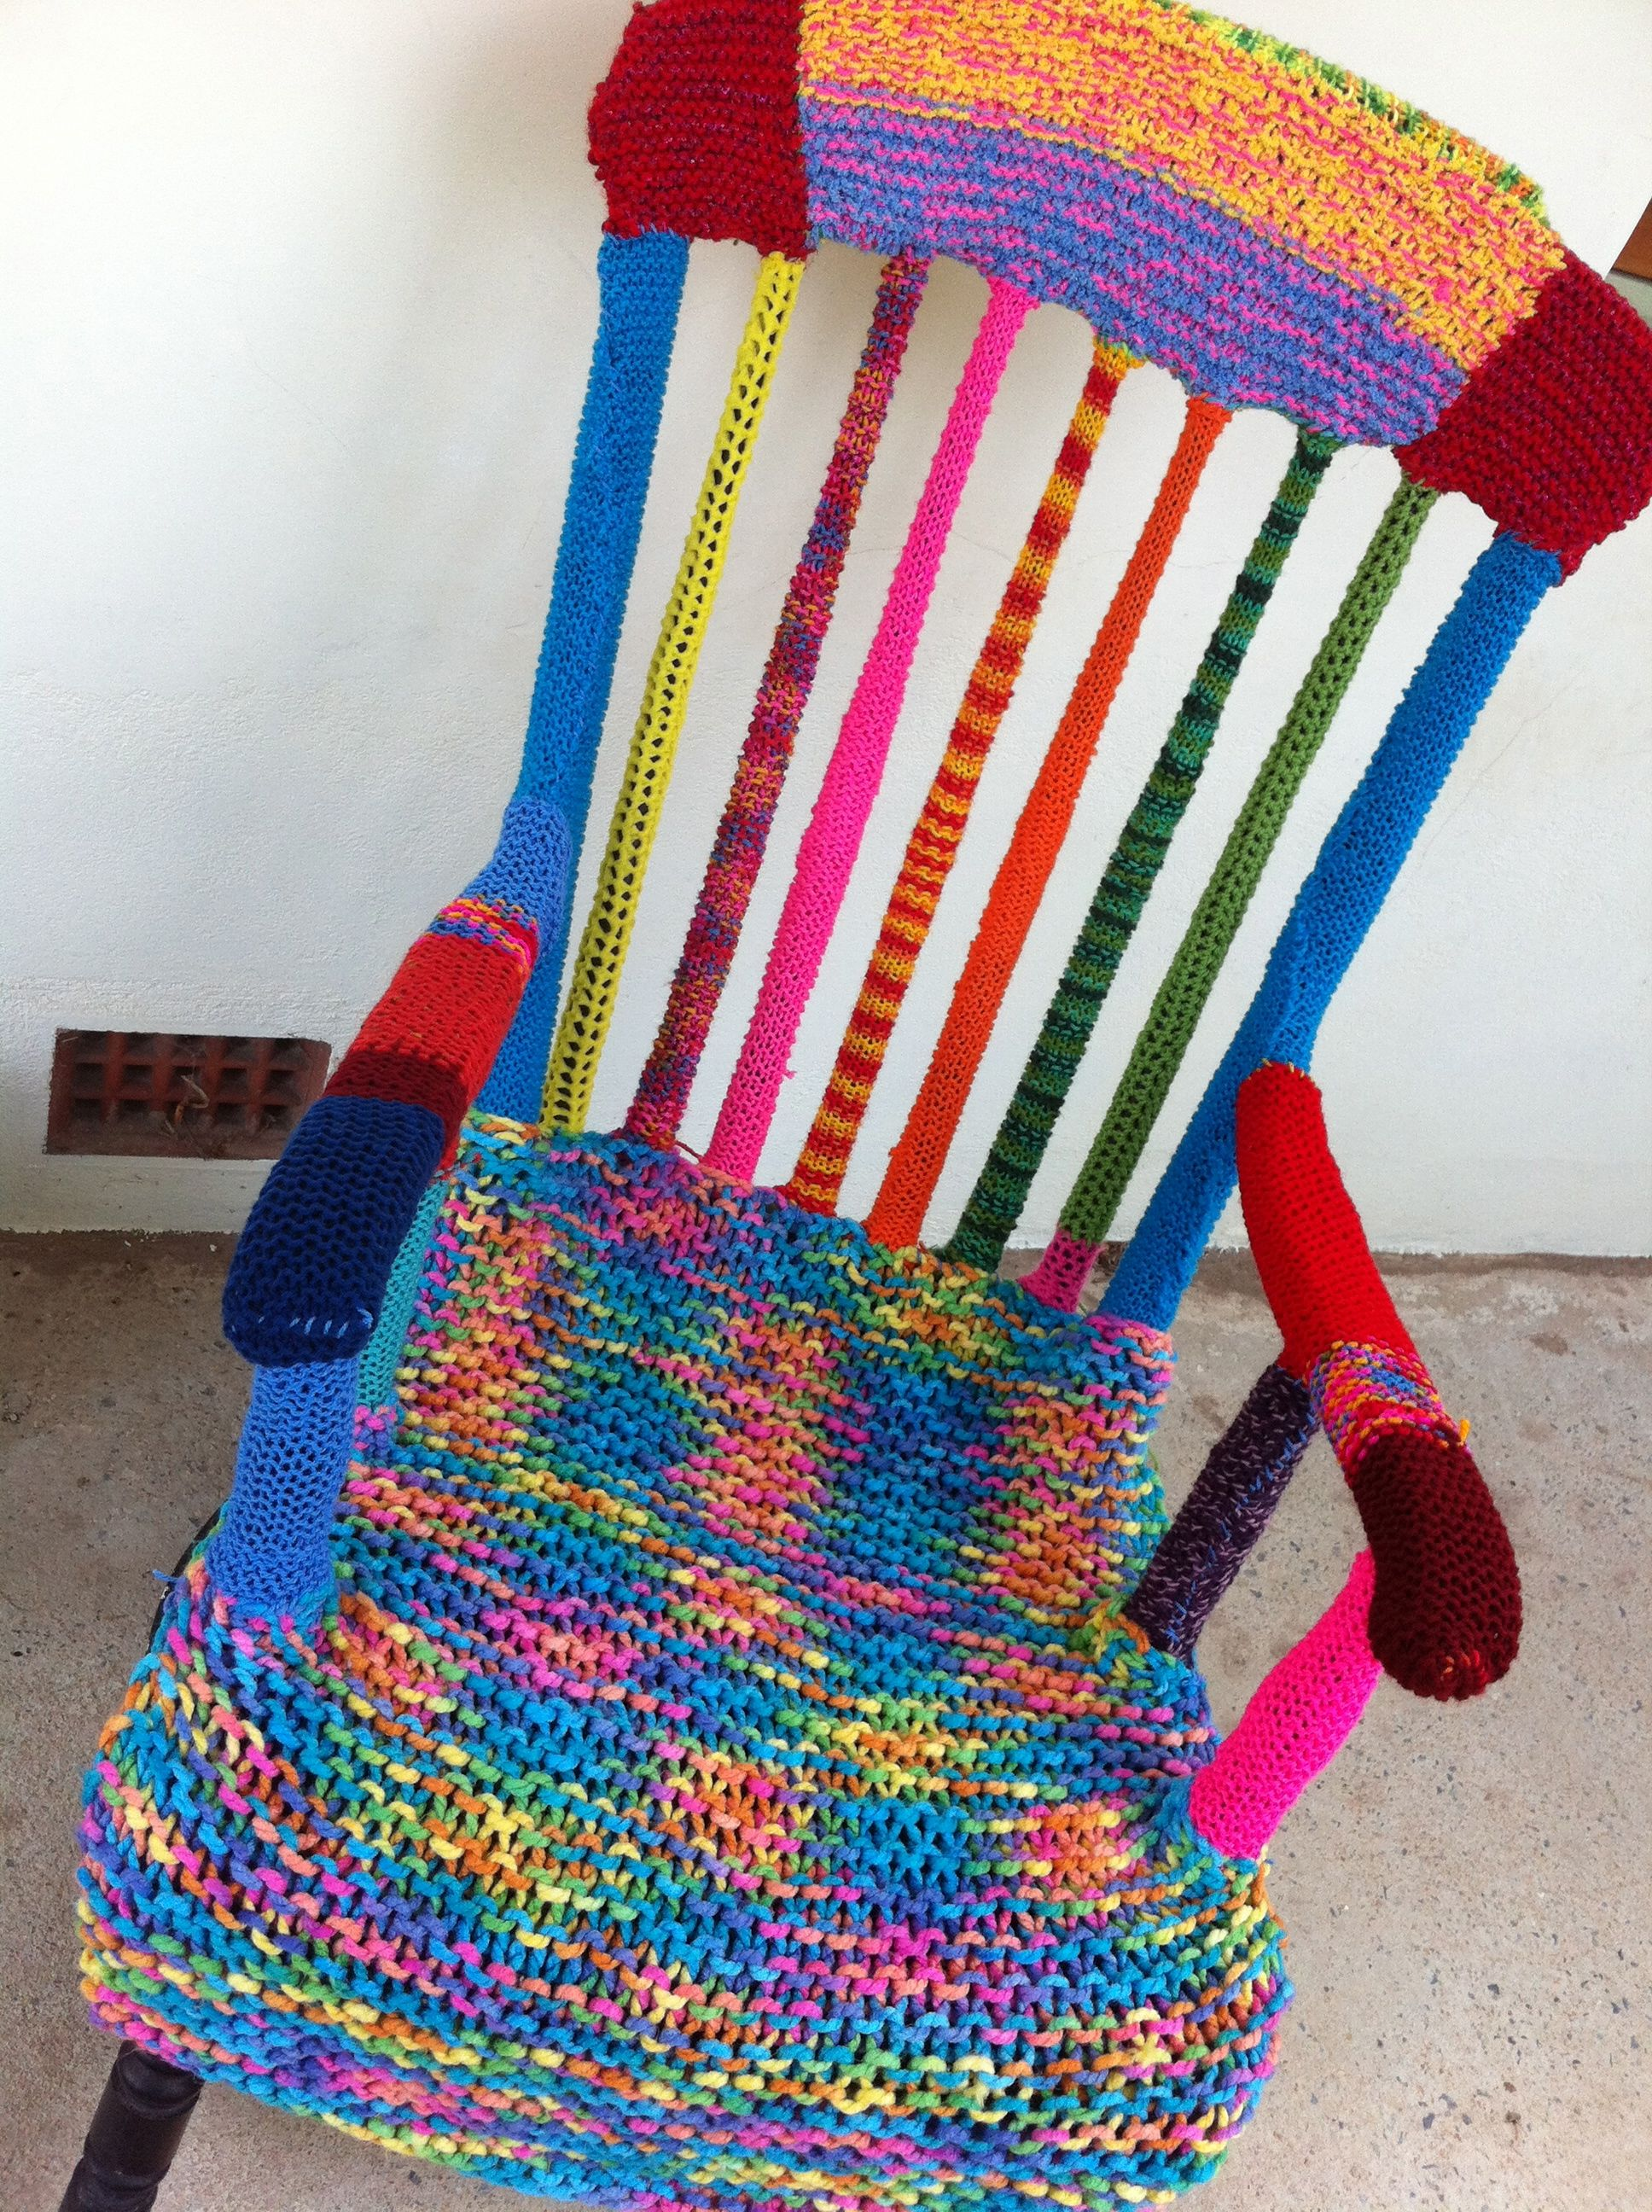 adelaide | YARN BOMBING